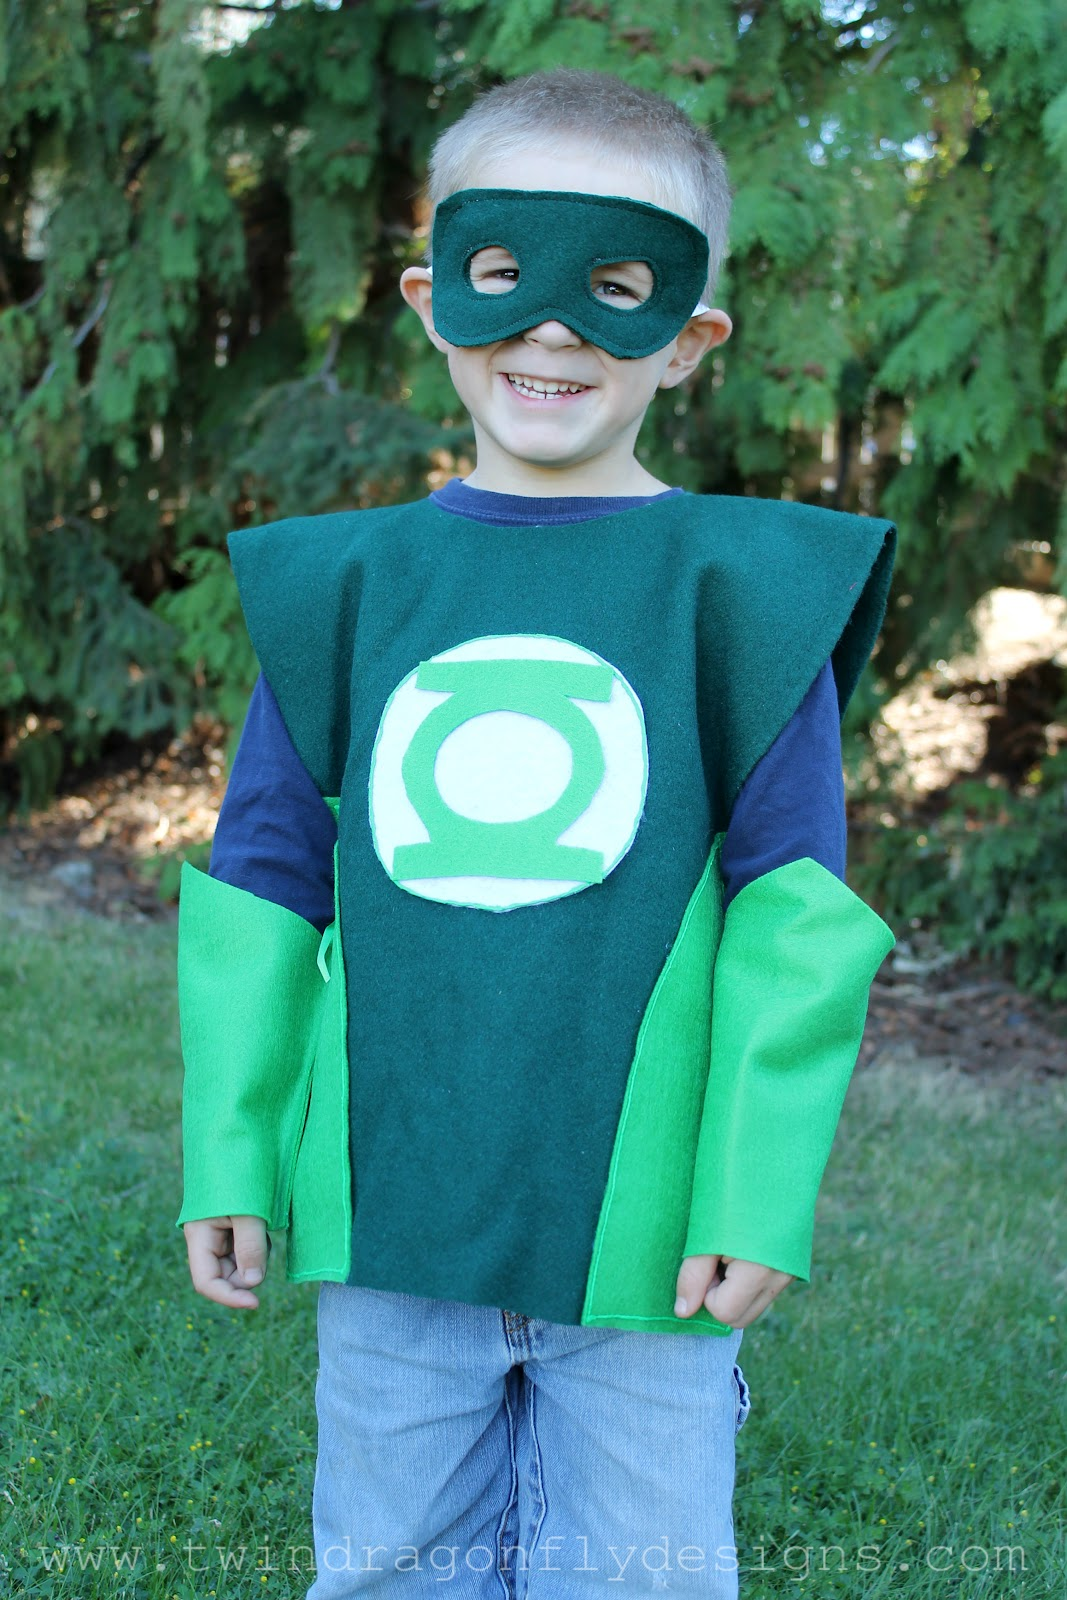 No sew super hero costumes tutorial dragonfly designs green lantern solutioingenieria Choice Image